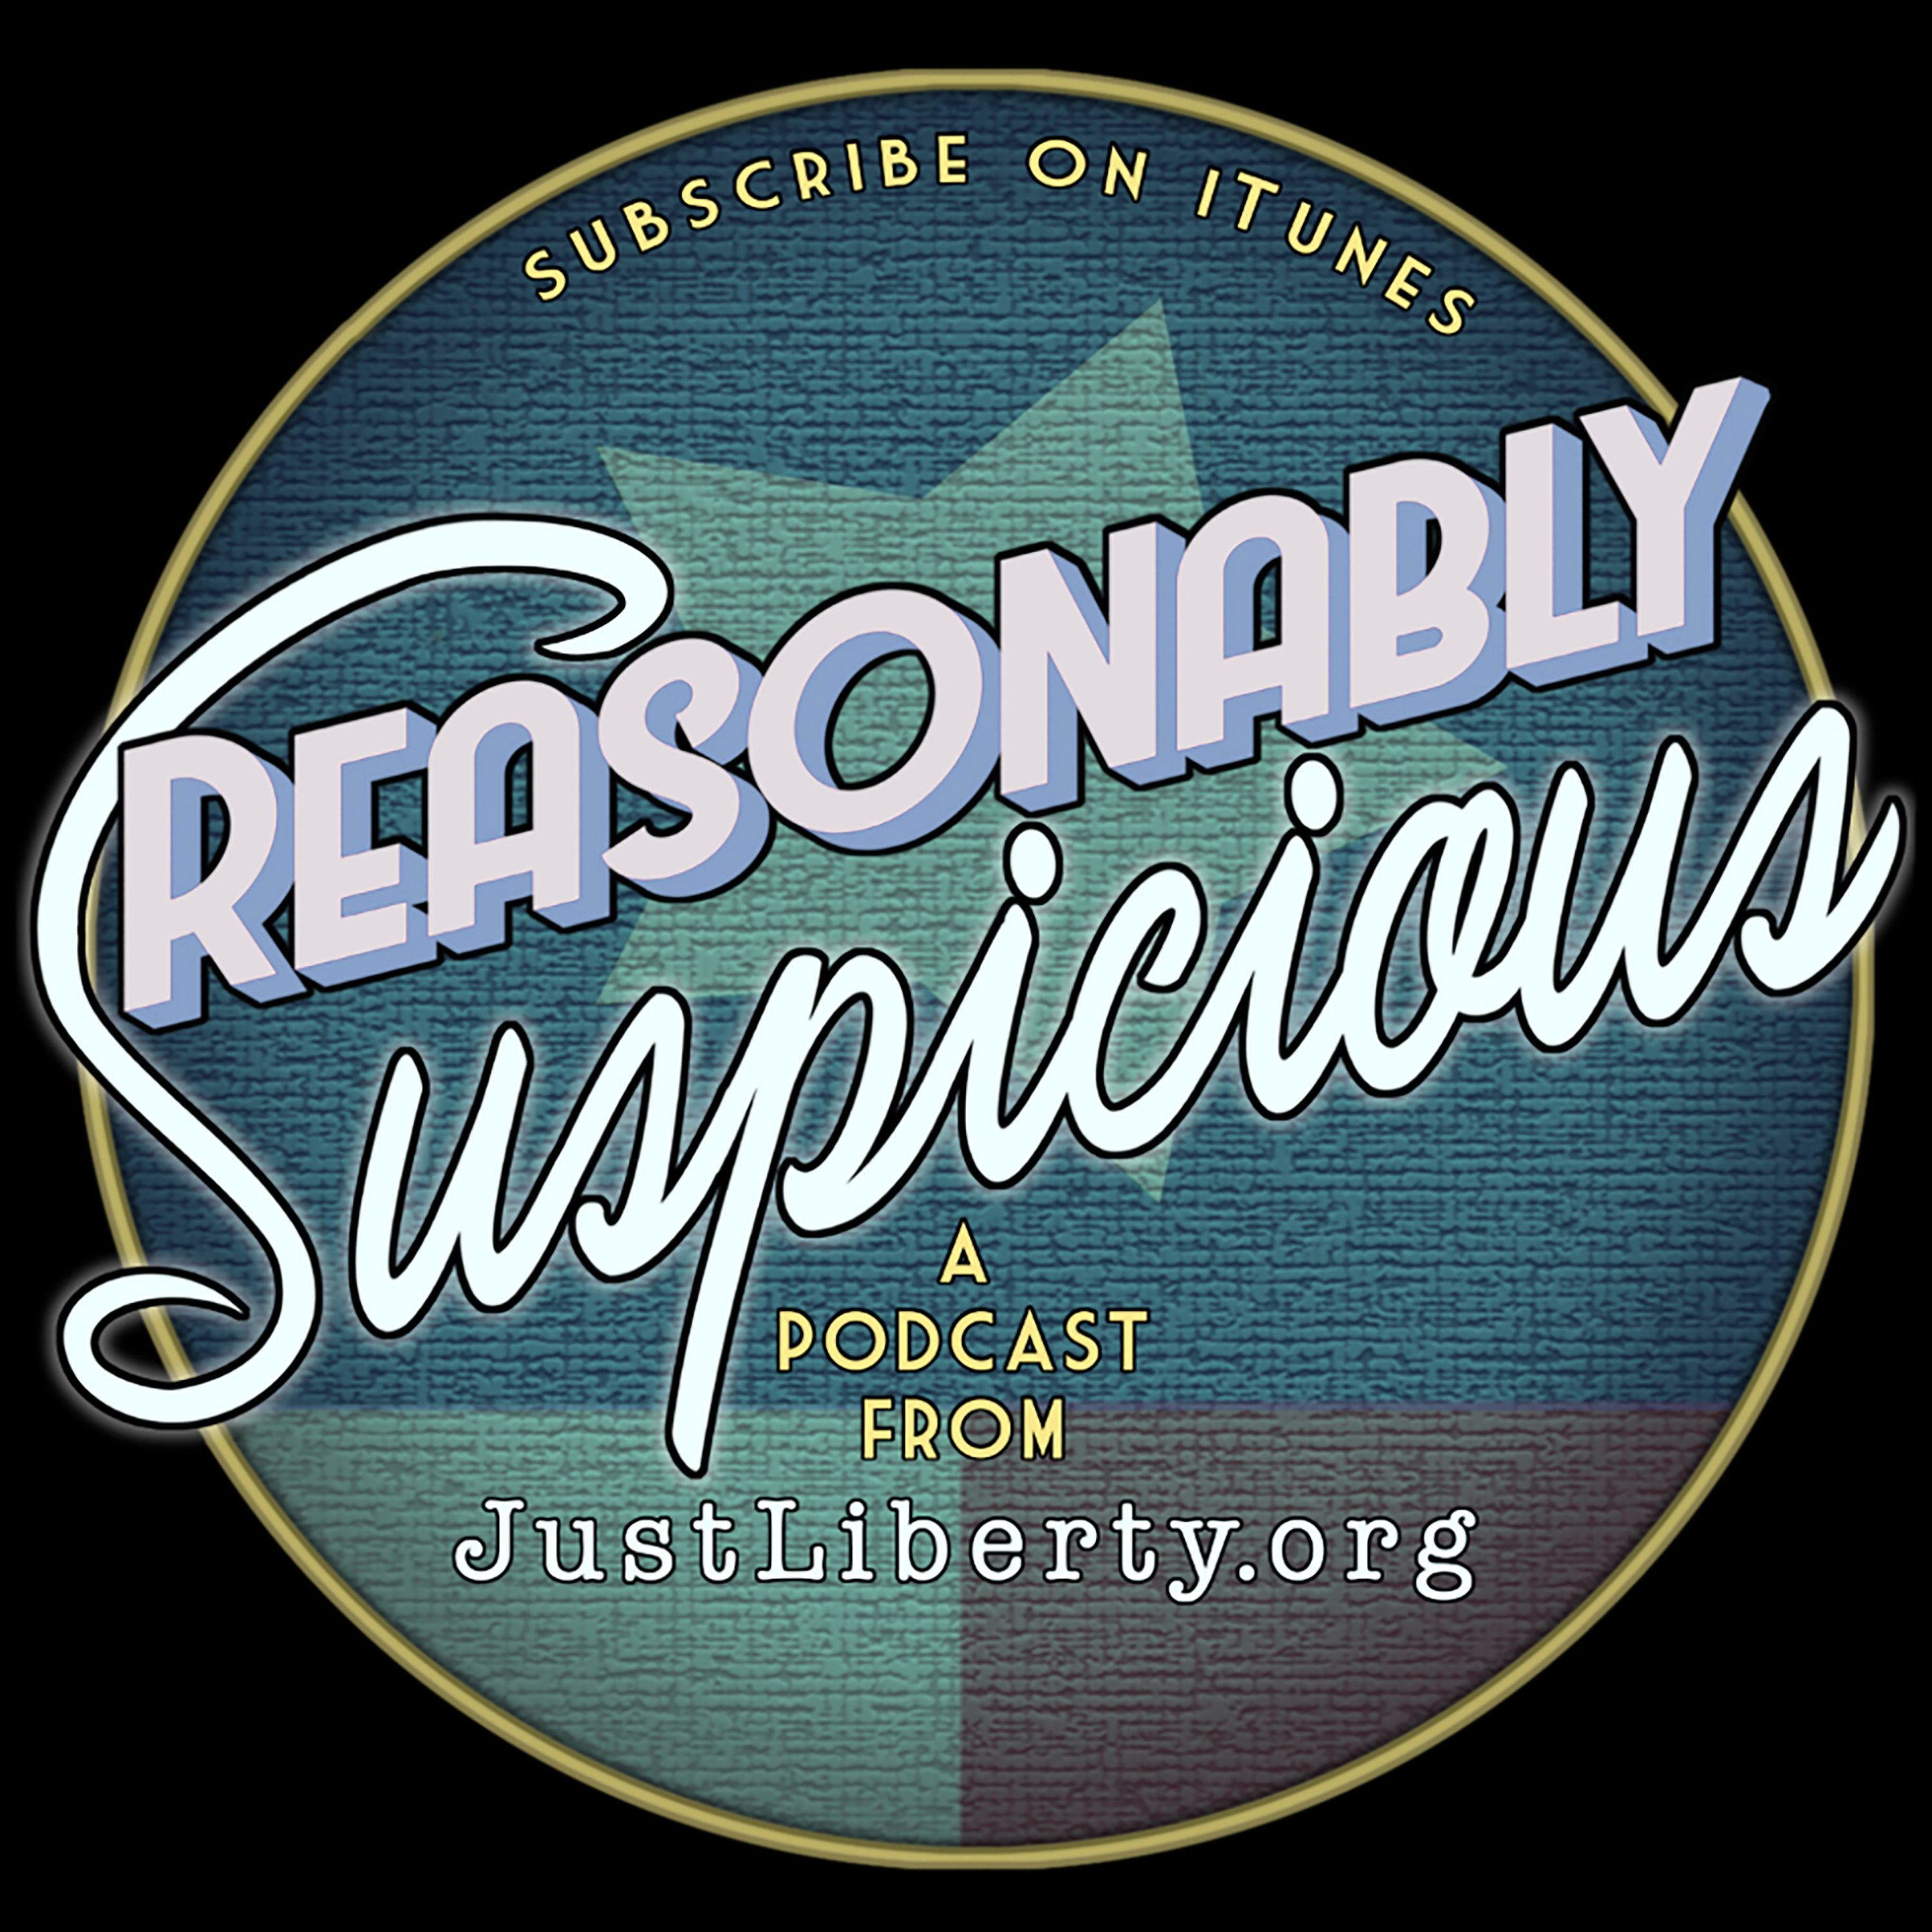 June 2019 Reasonably Suspicious: So little criminal justice reform this session!